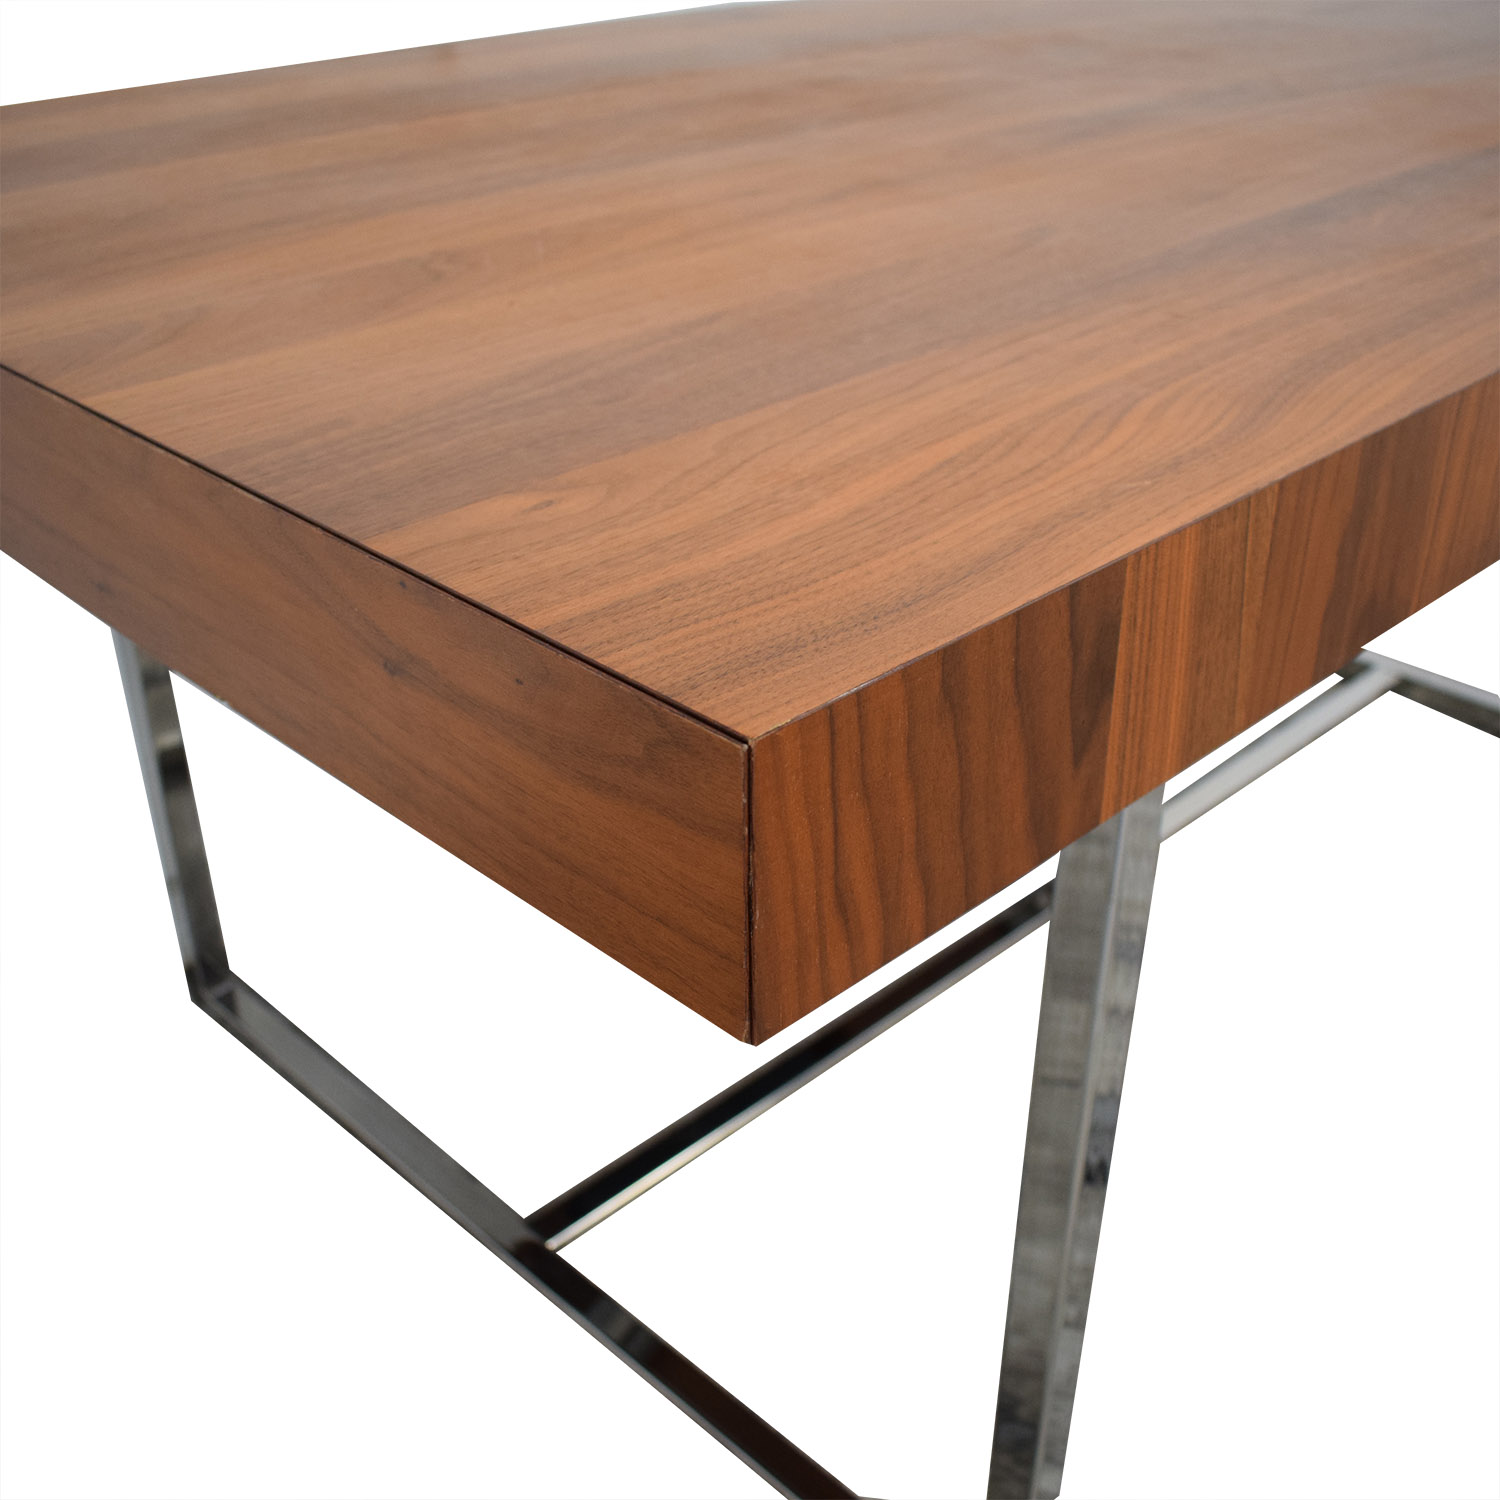 Calligaris Calligaris Extendable Dining Table on sale